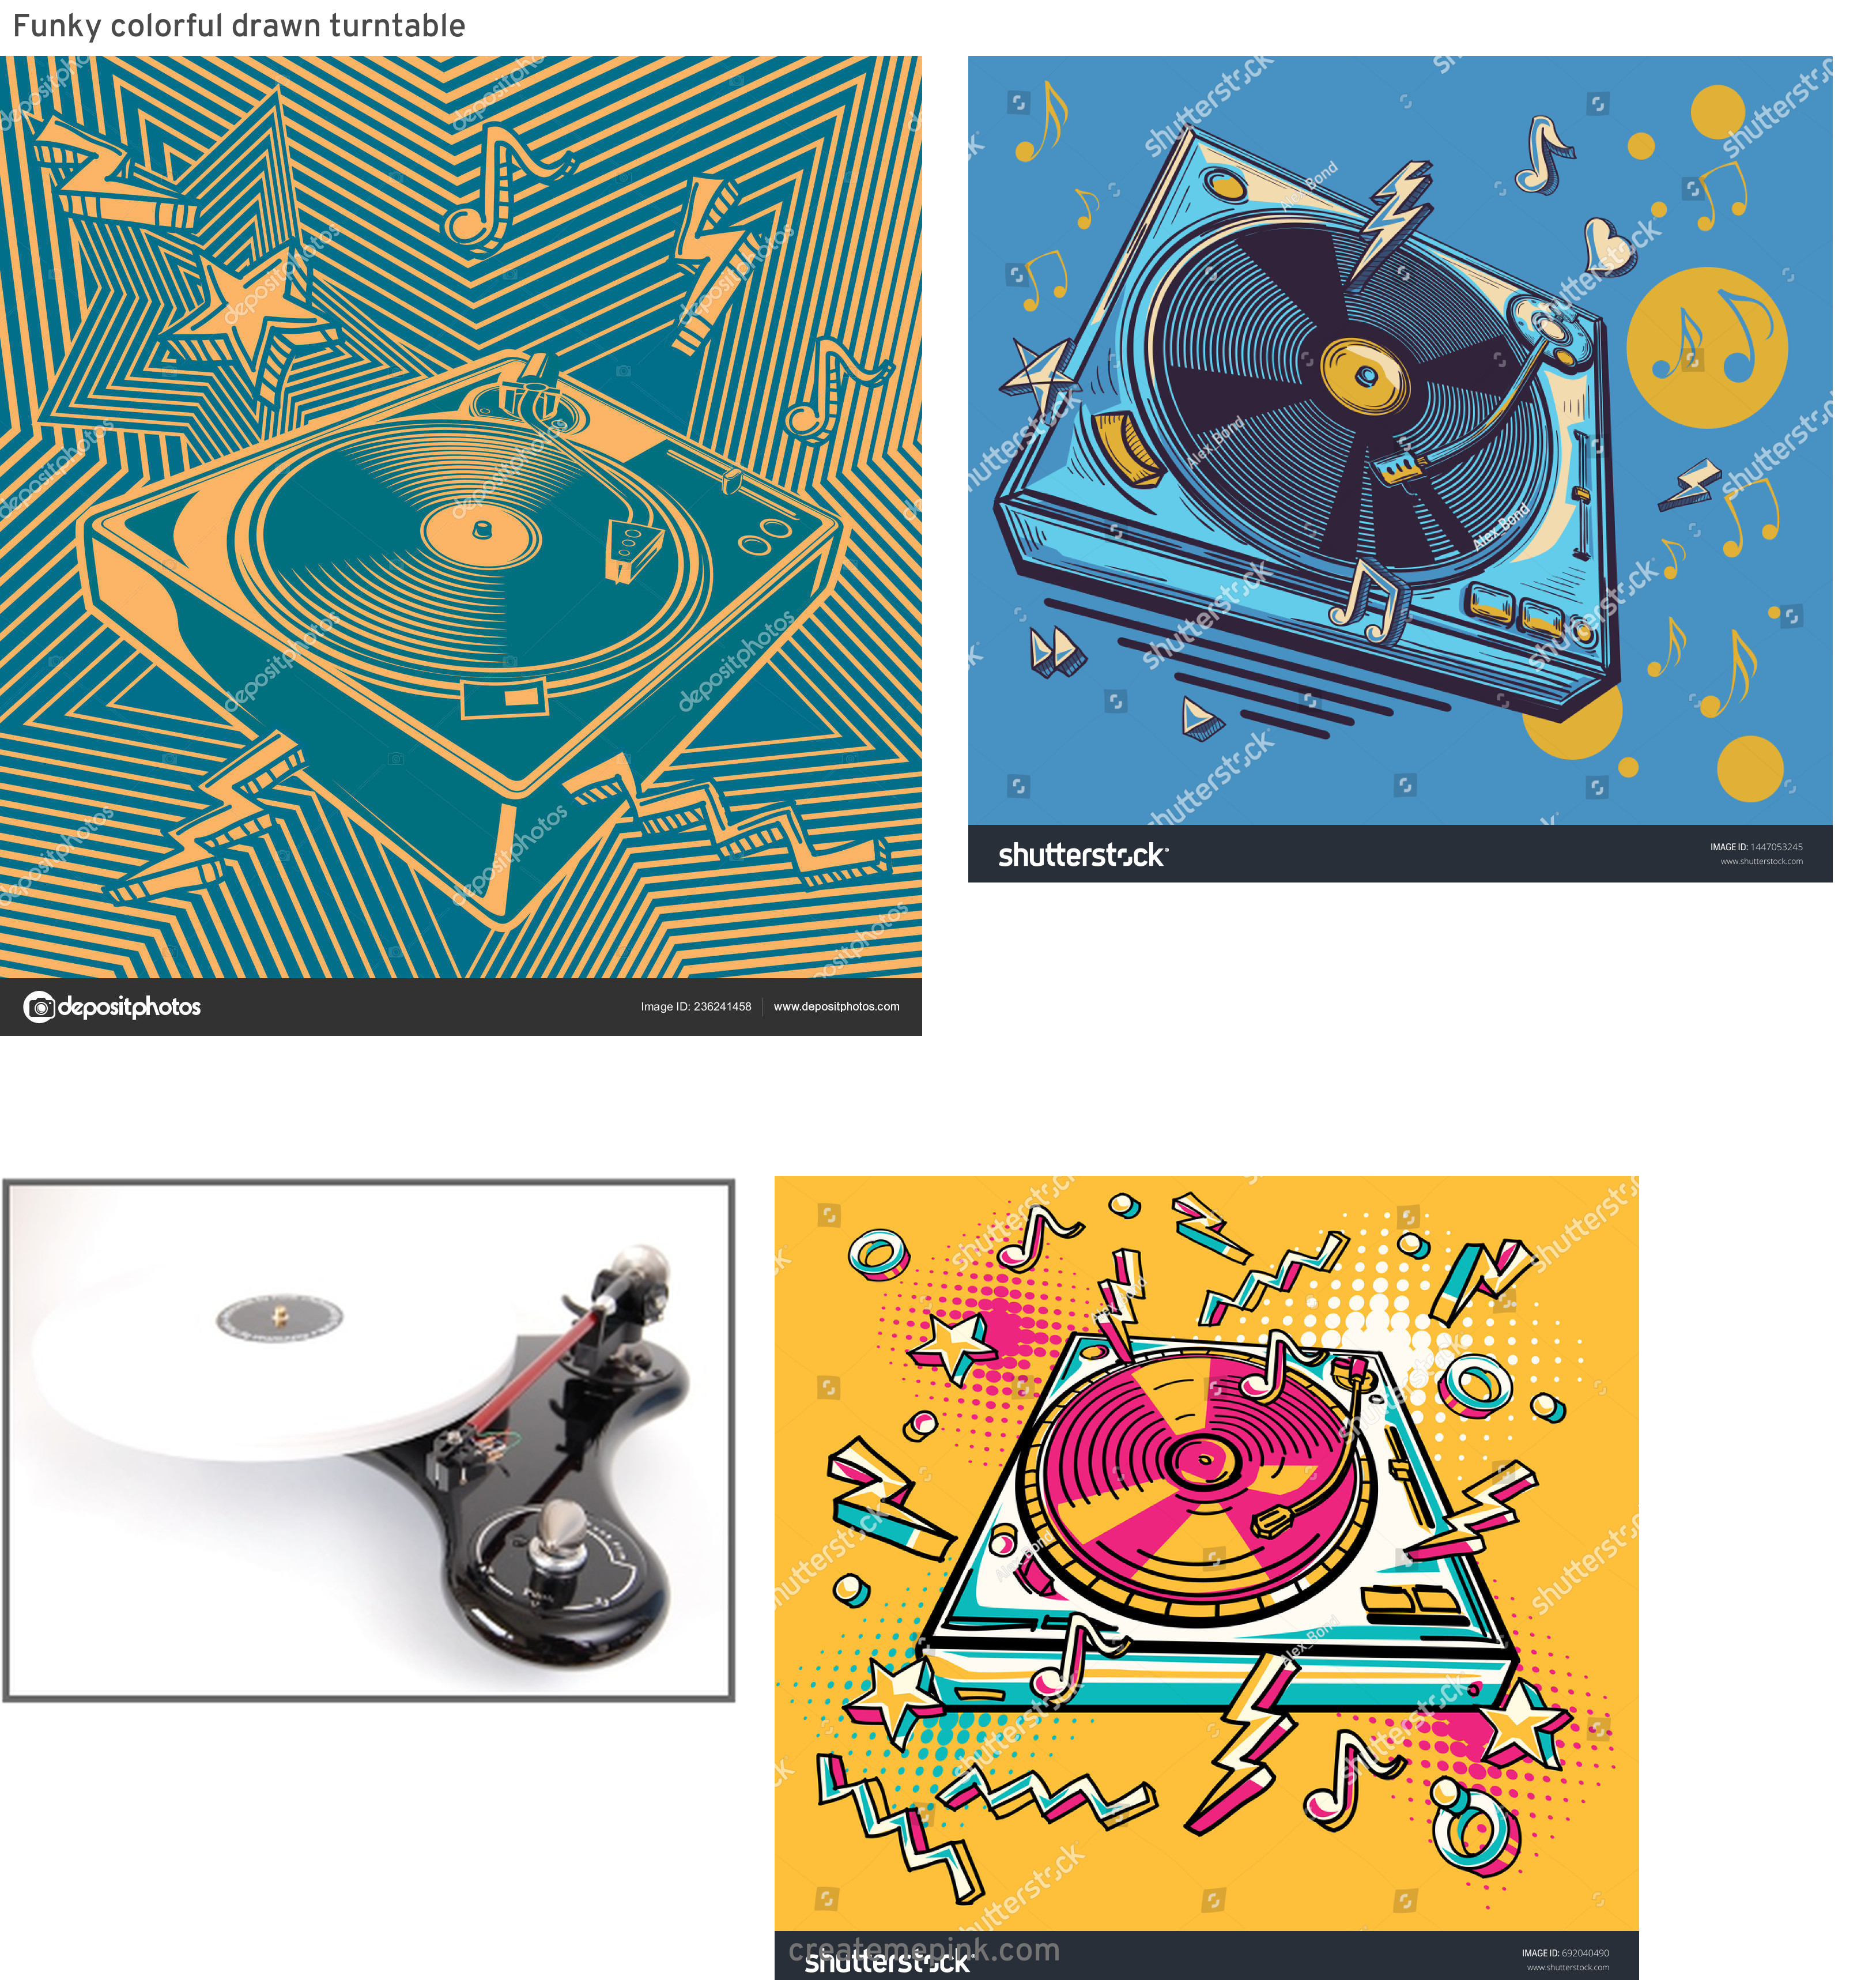 Funk Vector Turntables: Funky Colorful Drawn Turntable